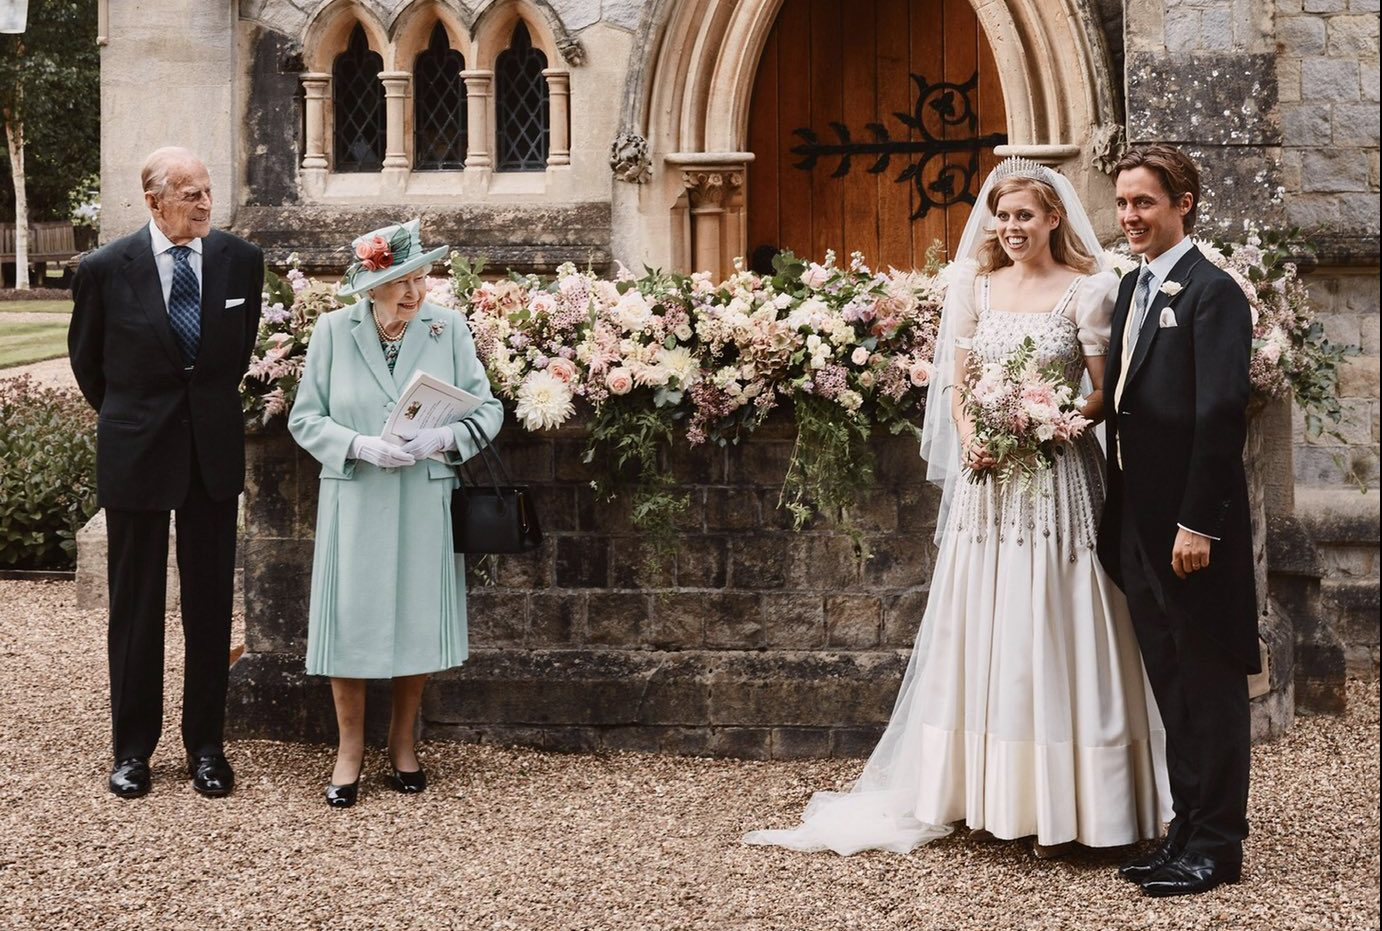 UPDATED: Princess Beatrice remodels Queen's 1960s dress for wedding day